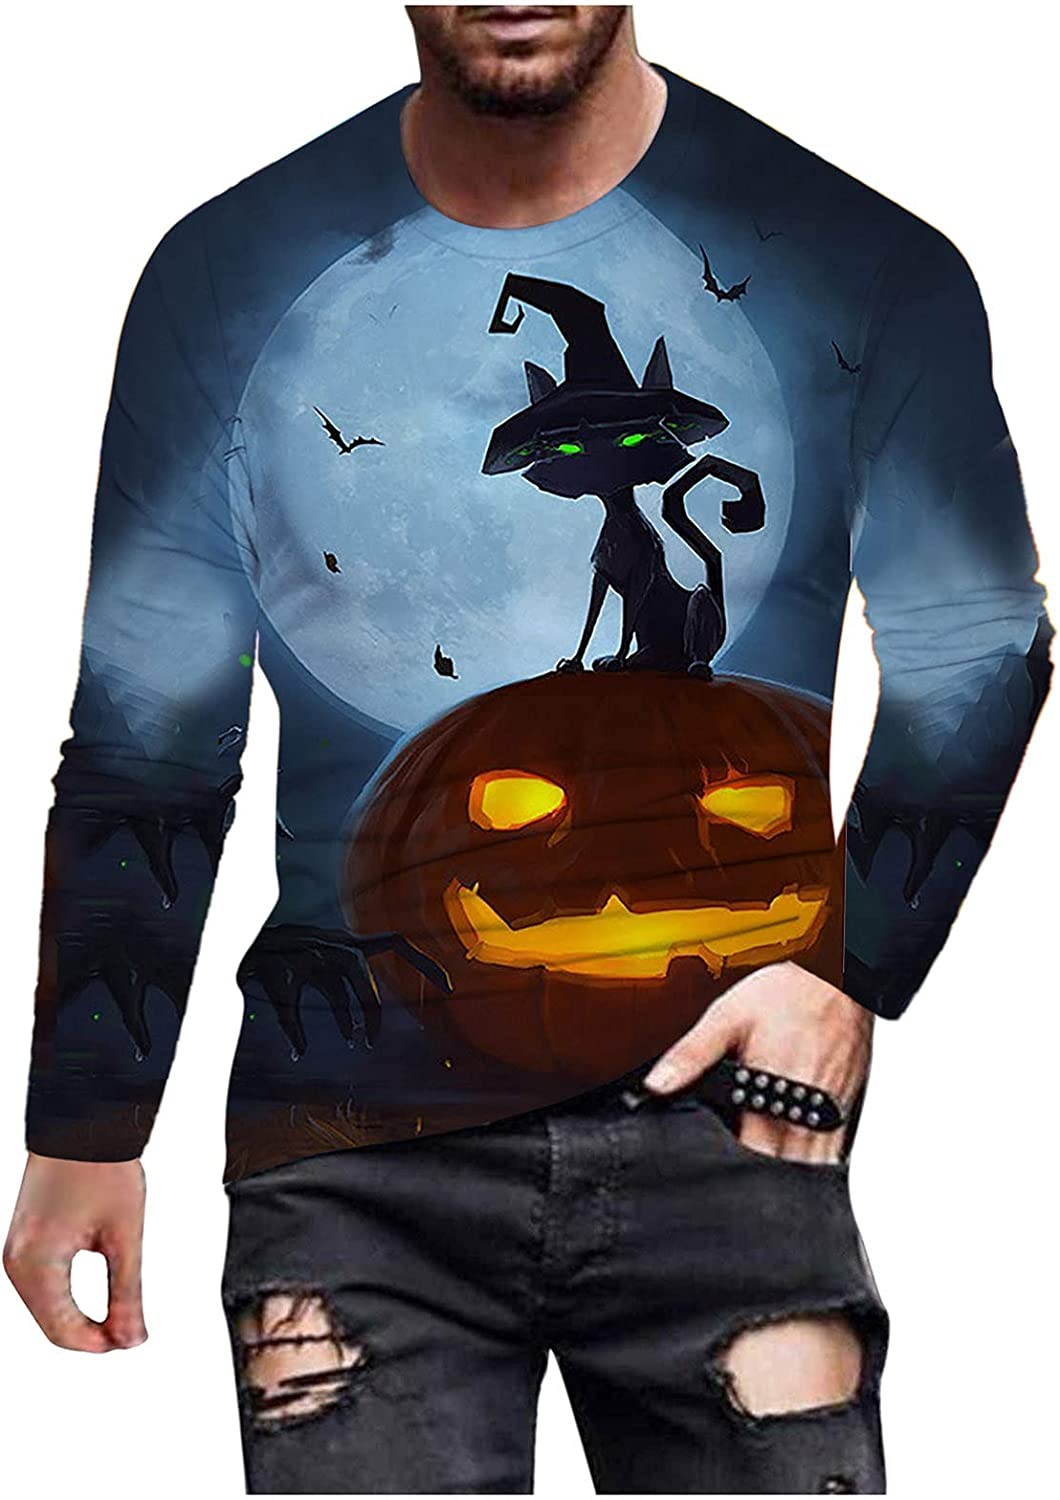 xoxing Halloween Shirts for Men Casual Autumn Winter Crew Neck Long Sleeve Tops 3D Digital Printed Loose Blouse Pullover